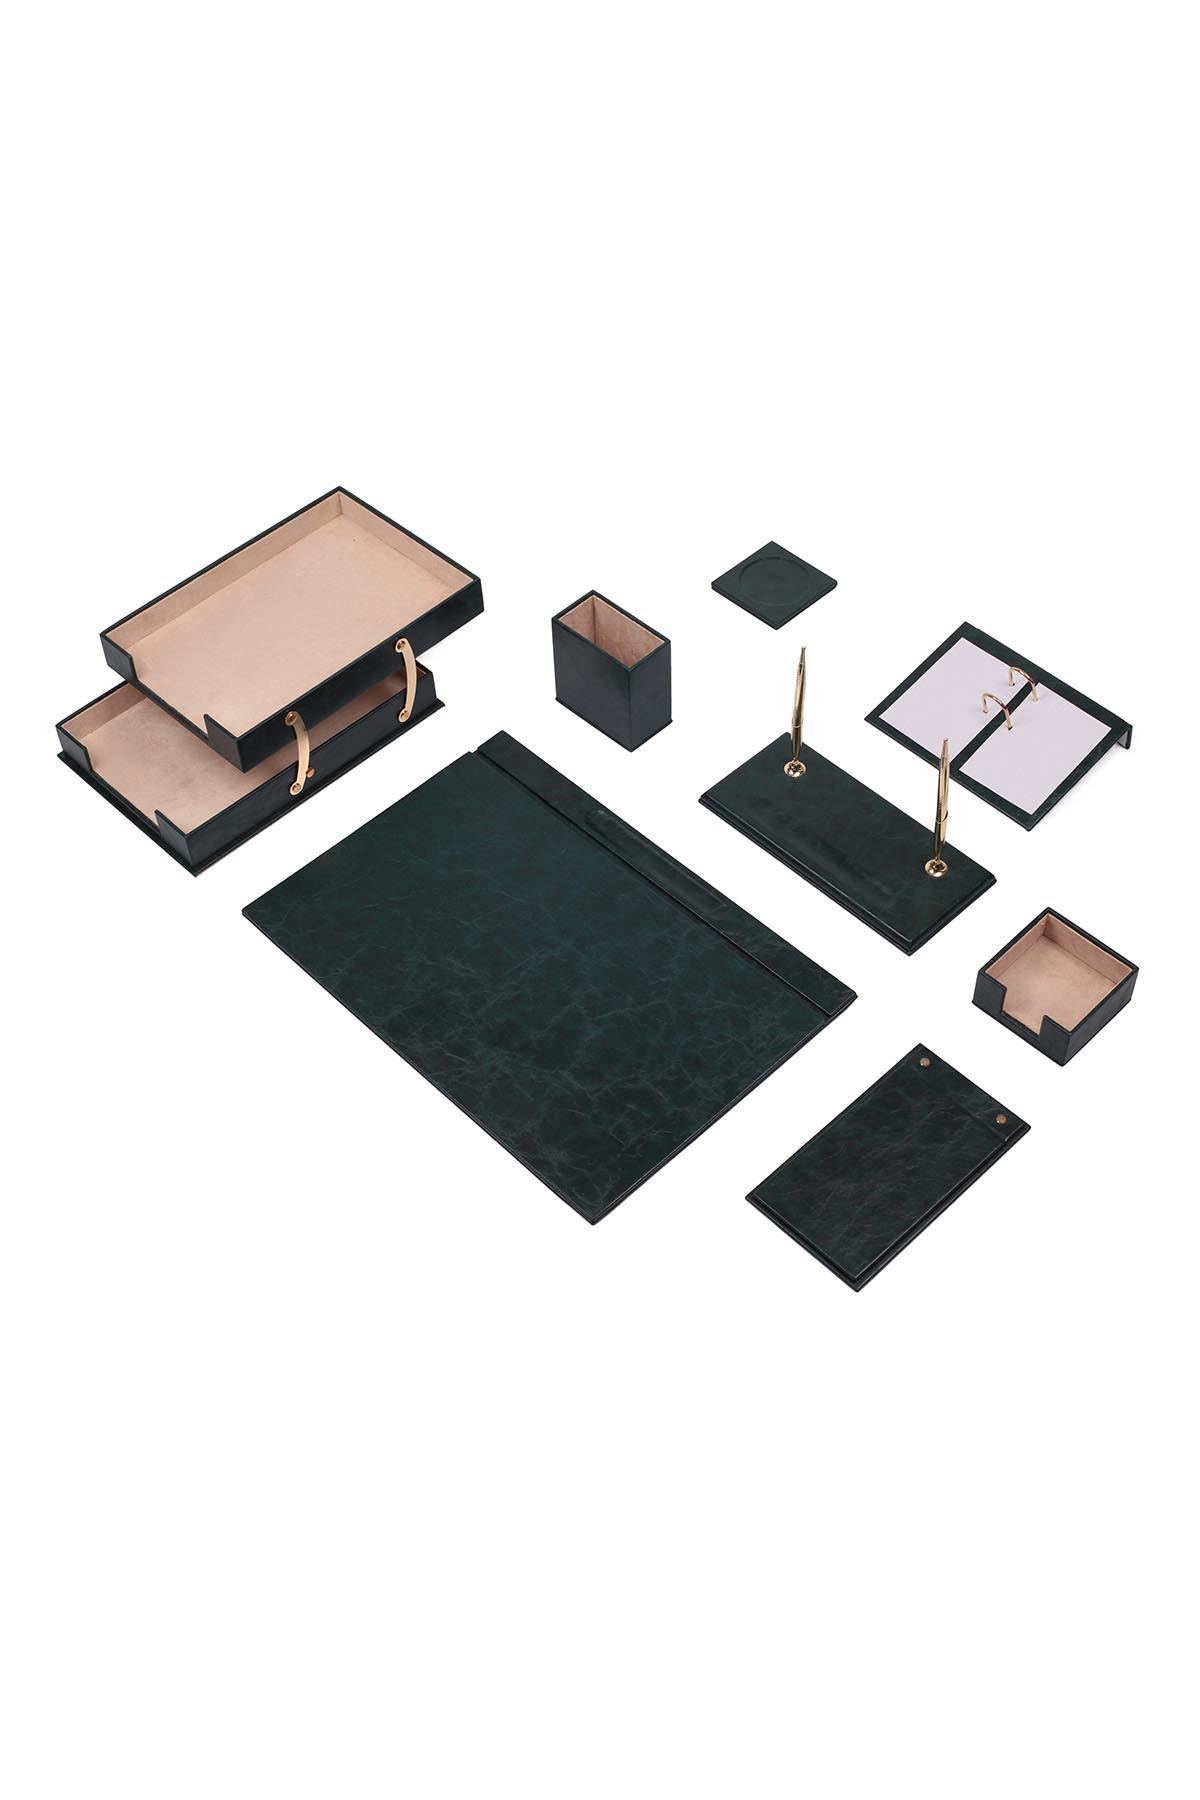 Luxury Leather Desk Set Green 10 Accessories - Double Document Tray